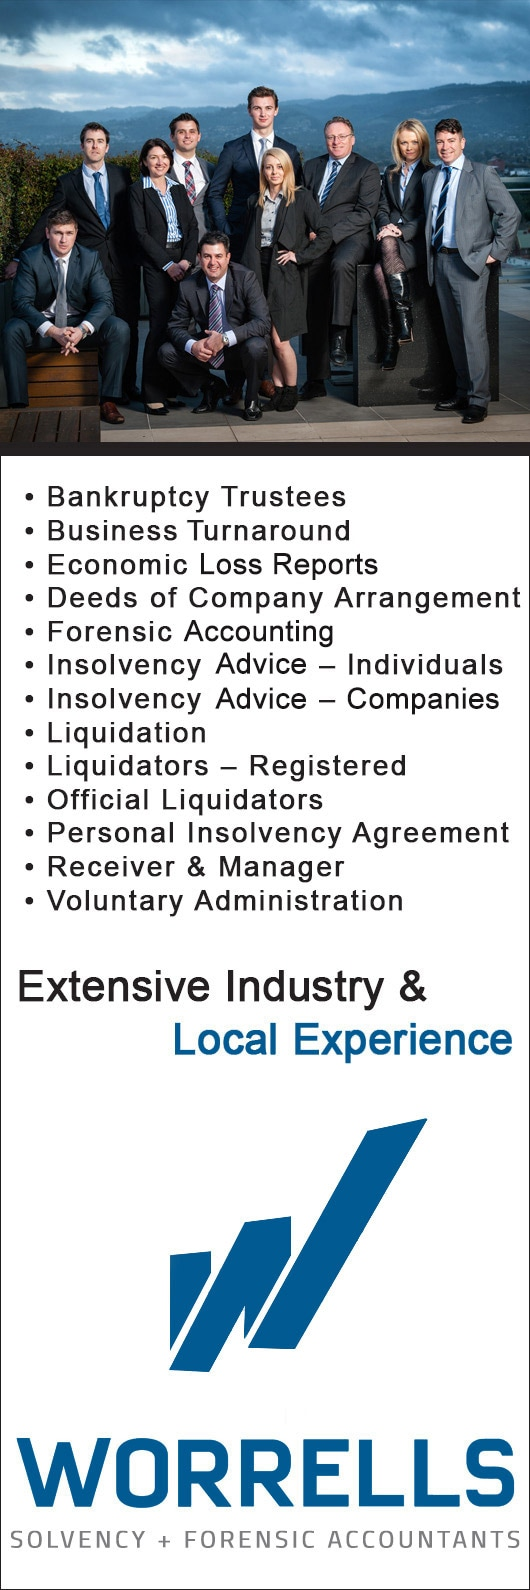 Worrells solvency forensic accountants insolvency liquidation worrells solvency forensic accountants promotion platinumwayz